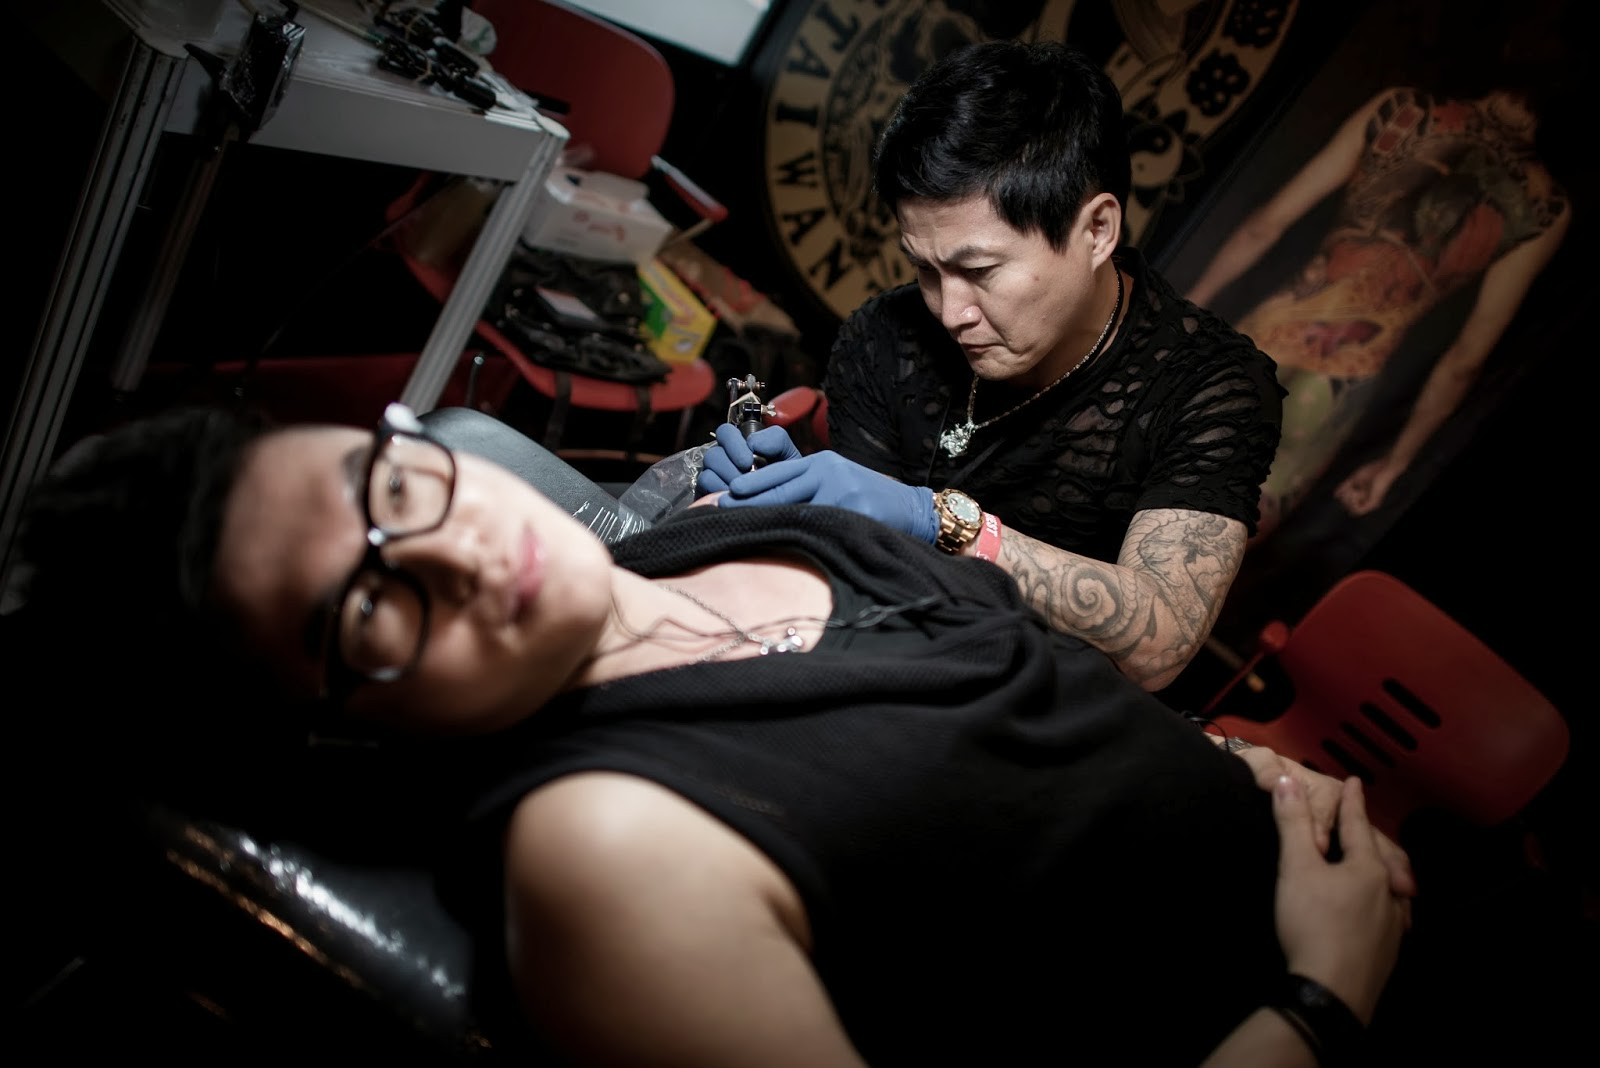 Artist, China, Hong Kong, Men, Men with Tattoo, People, Tattoo, Tattoo Convention, Women, Women with Tattoo, World, Offbeat, Art, Tattoo Artist,